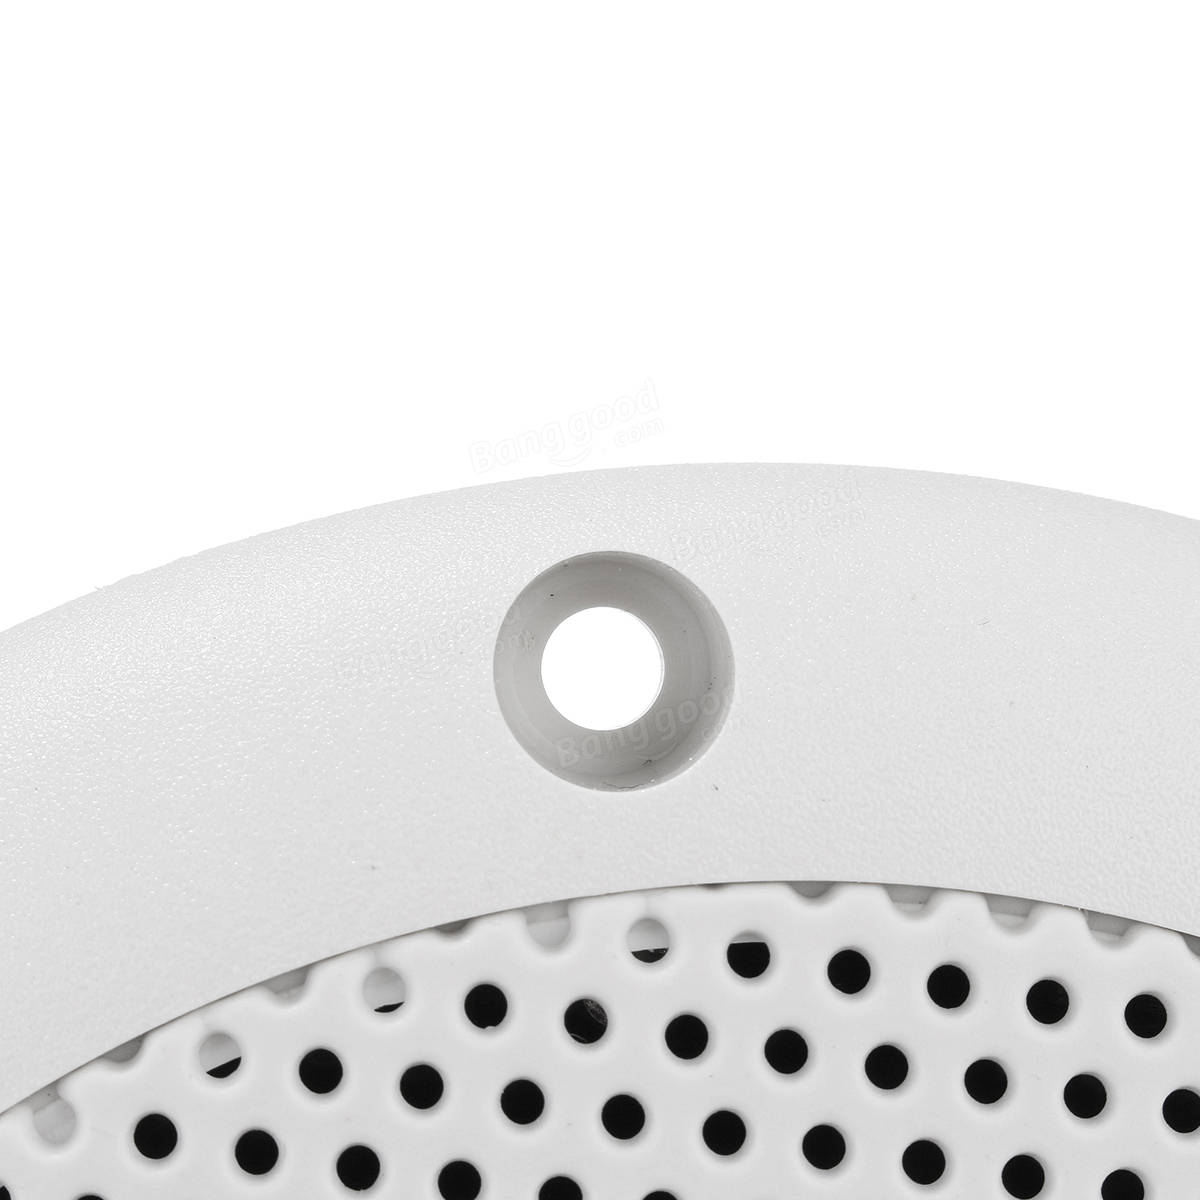 Waterproof ceiling speakers for bathroom - 1 Pair Waterproof Marine Boat Ceiling Speakers Kitchen Bathroom Water Resistant